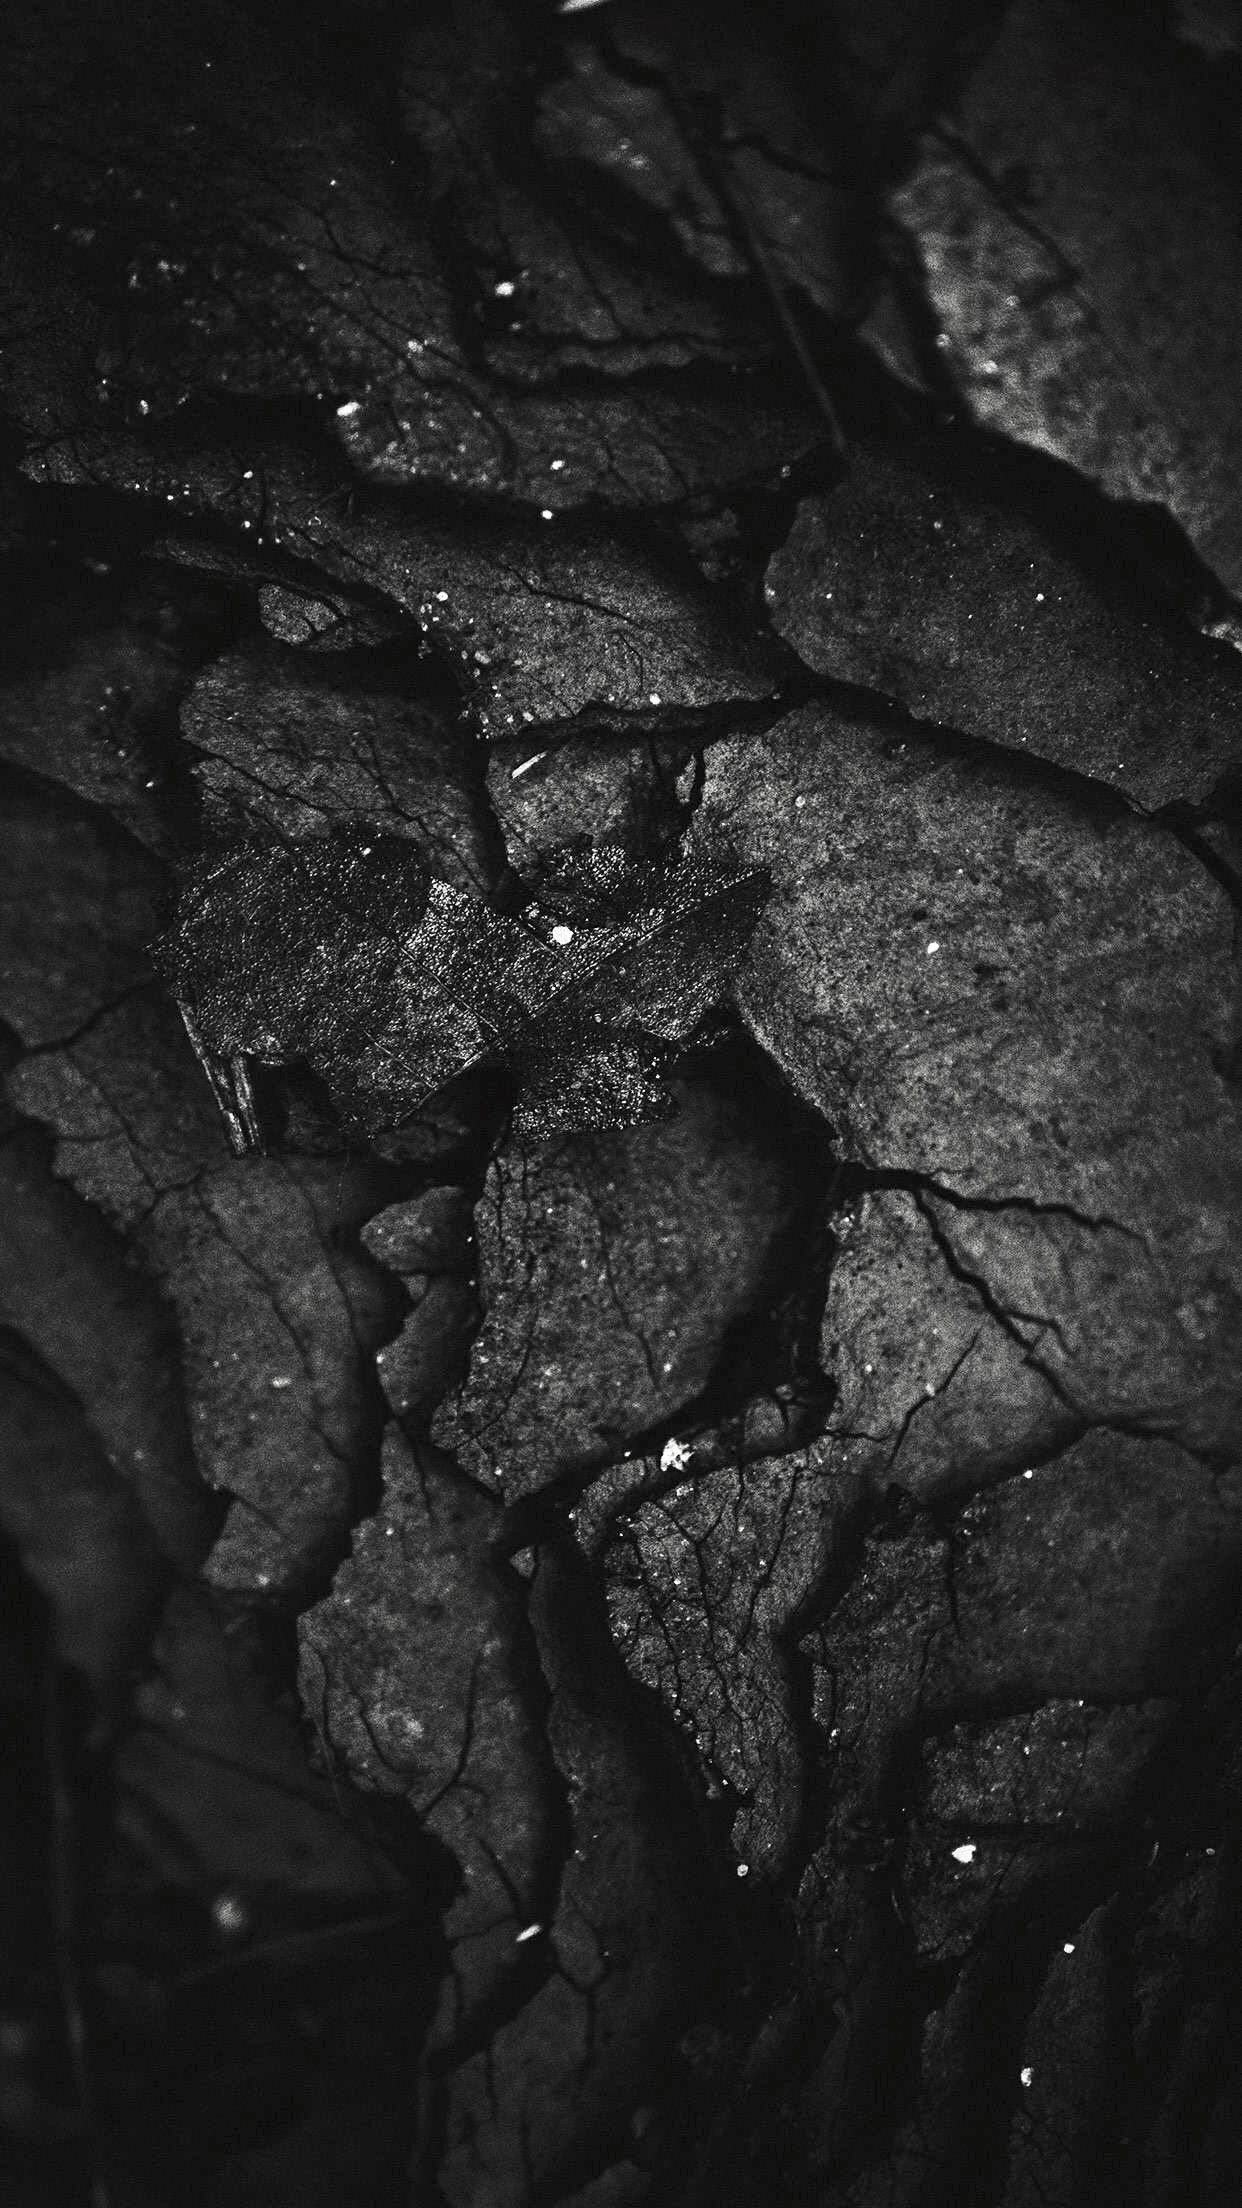 Black glitter iPhone wallpaper from Uploaded by user